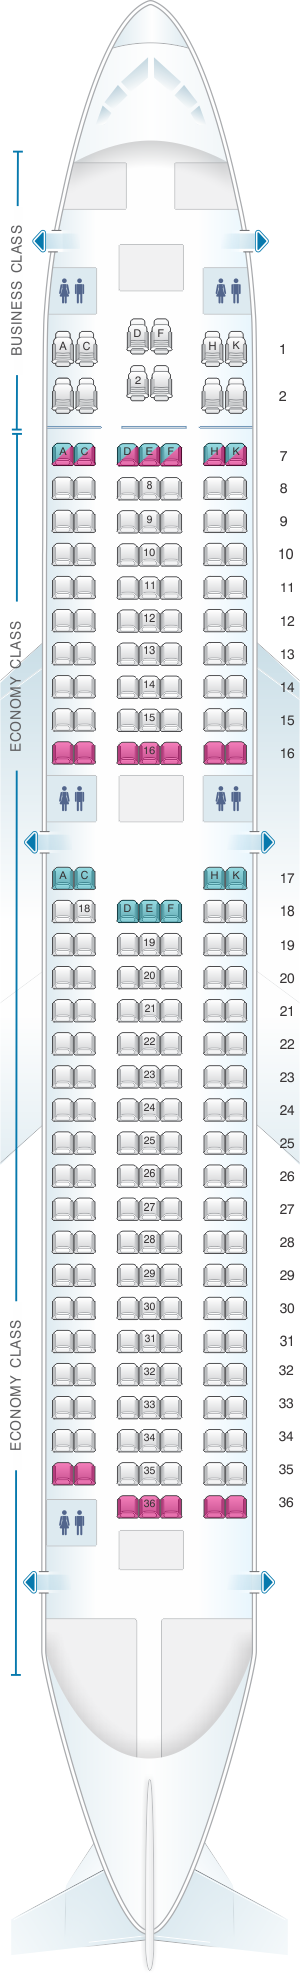 Seat map for Aer Lingus Boeing B767 200